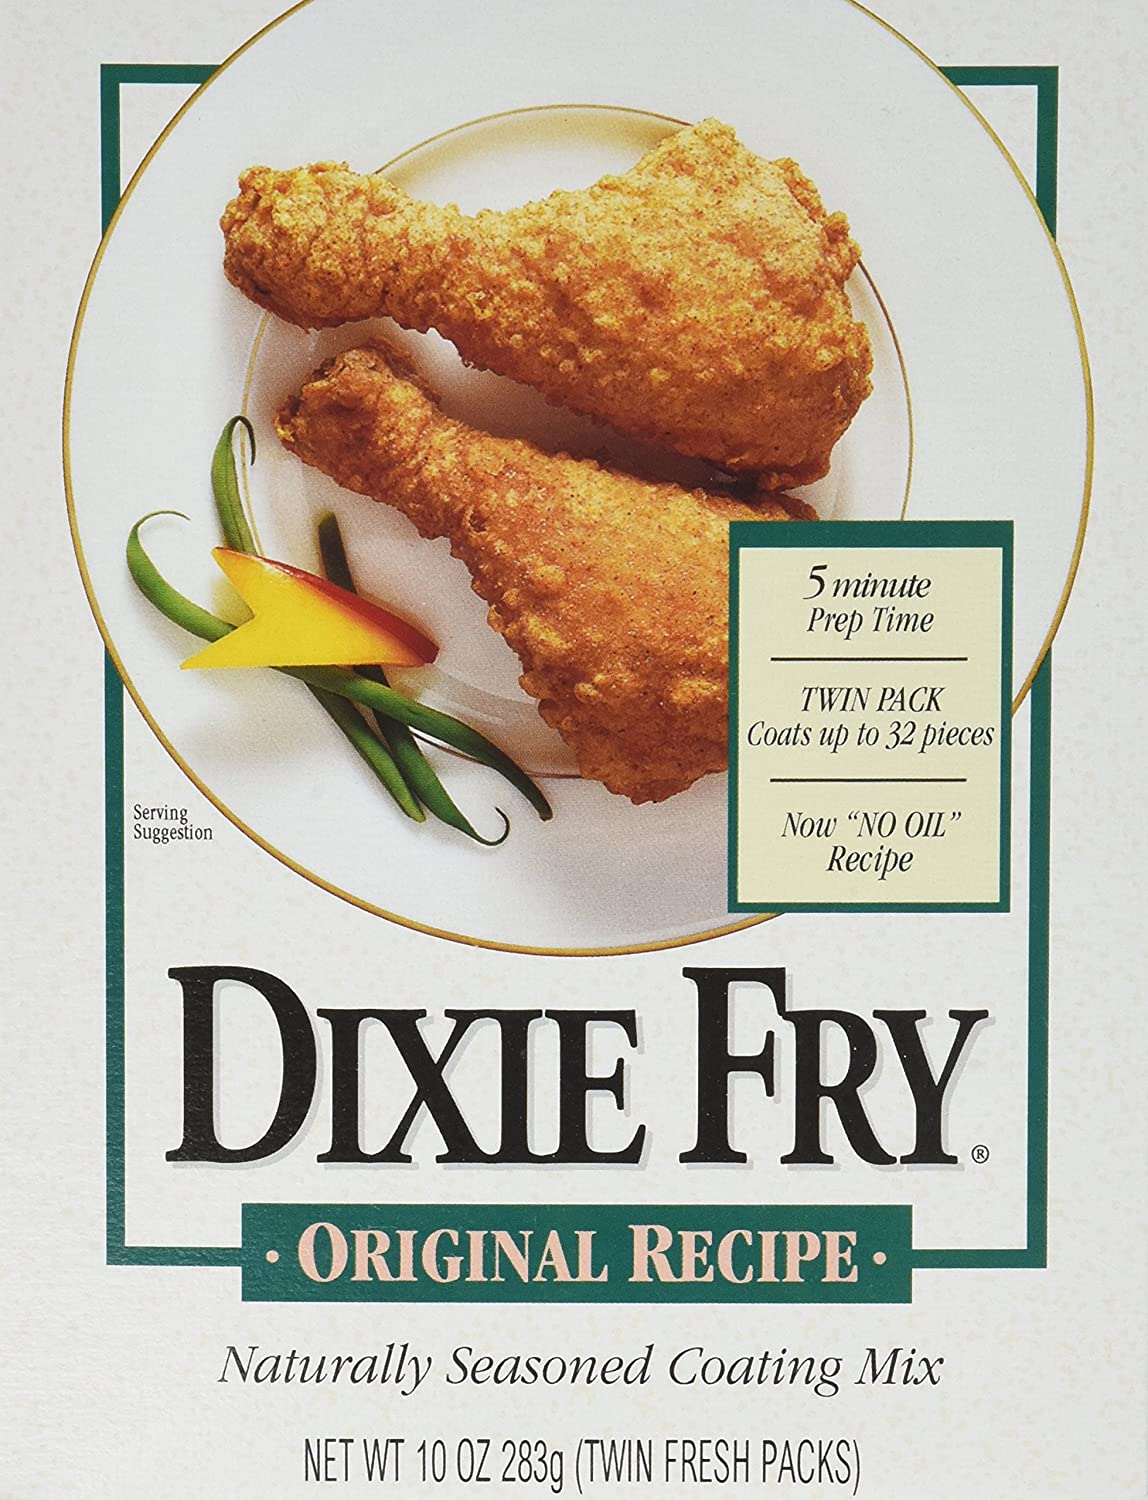 Dixie Fry 10-Ounce Original Recipe Coating Mix for Fried Chicken, Pork Chops, & Seafood (Pack of 6)